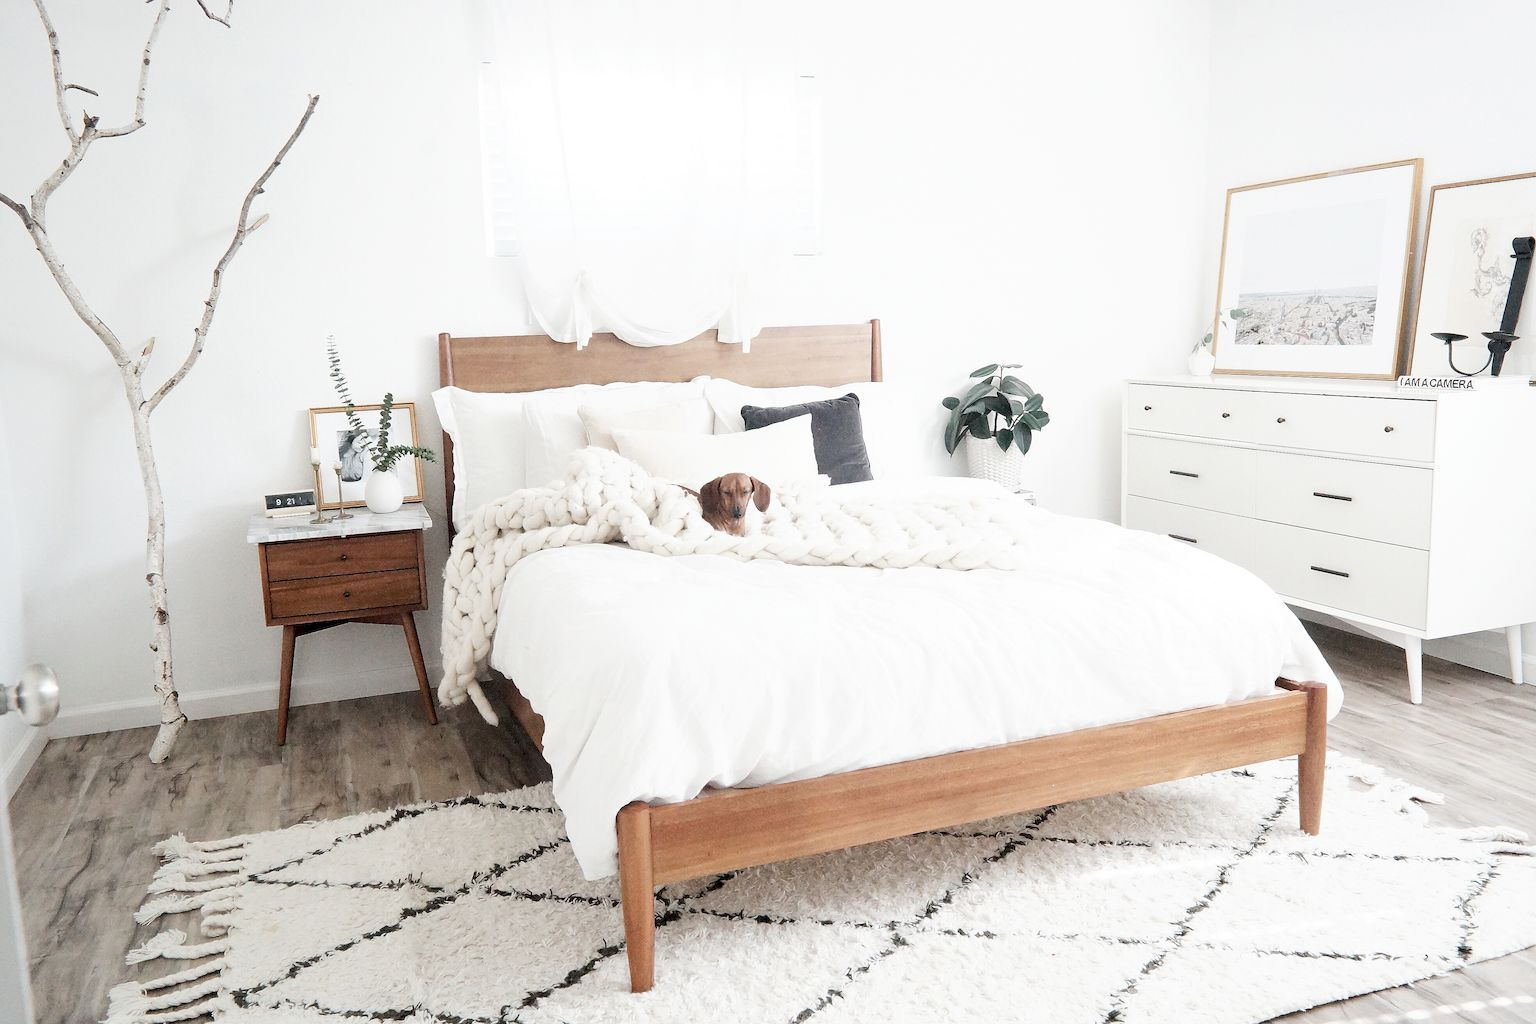 120 Couples First Apartment Decorating Ideas on A Budget ...